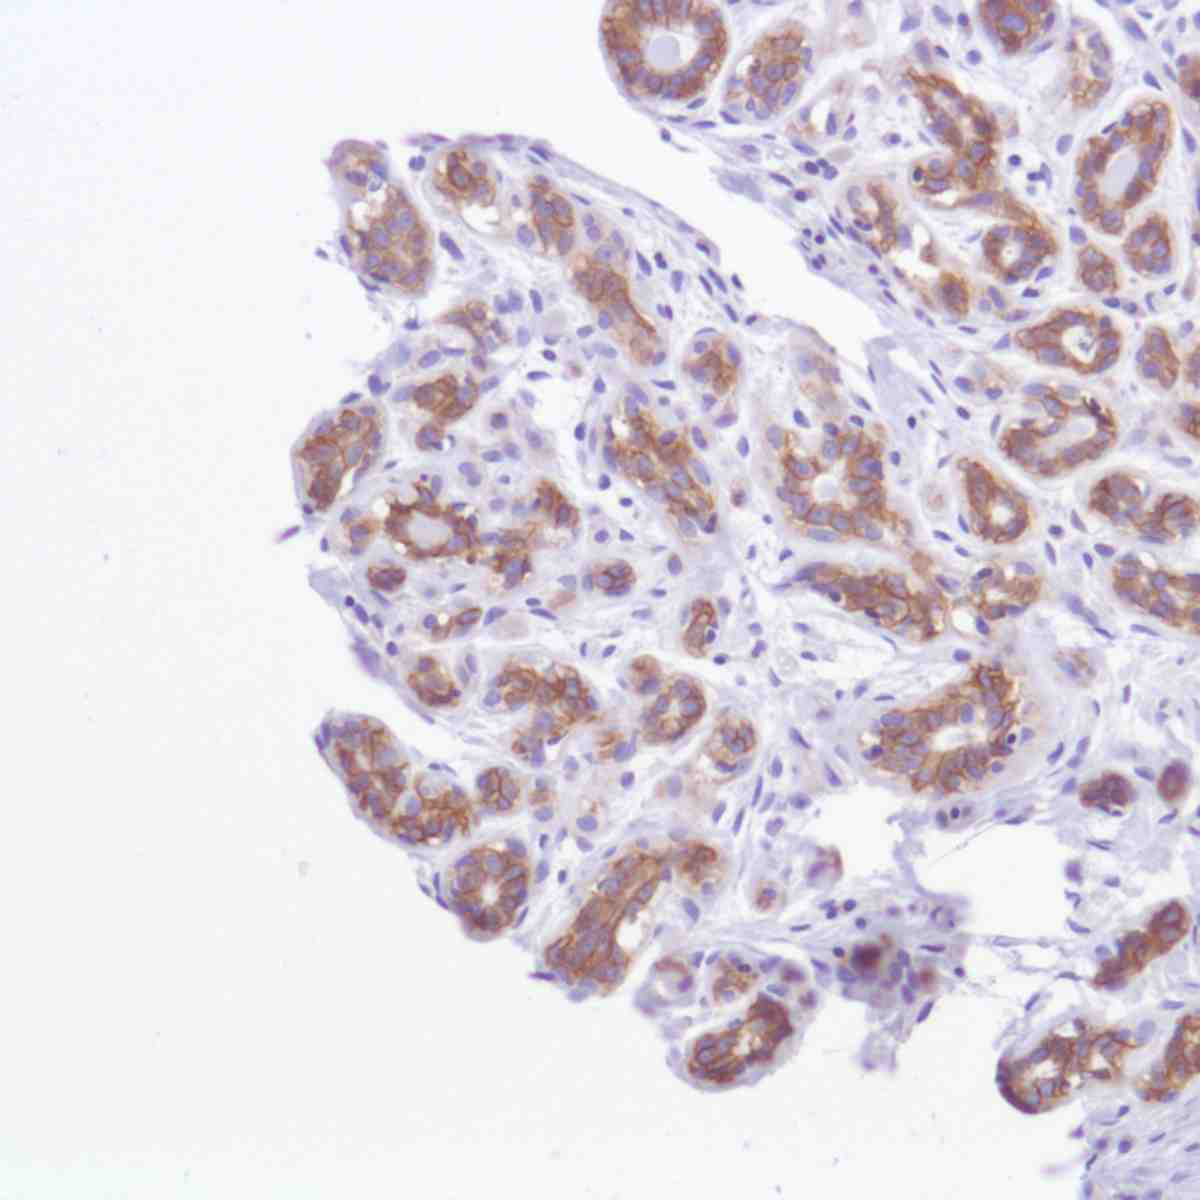 Human Breast stained with anti-TROP-2 antibody